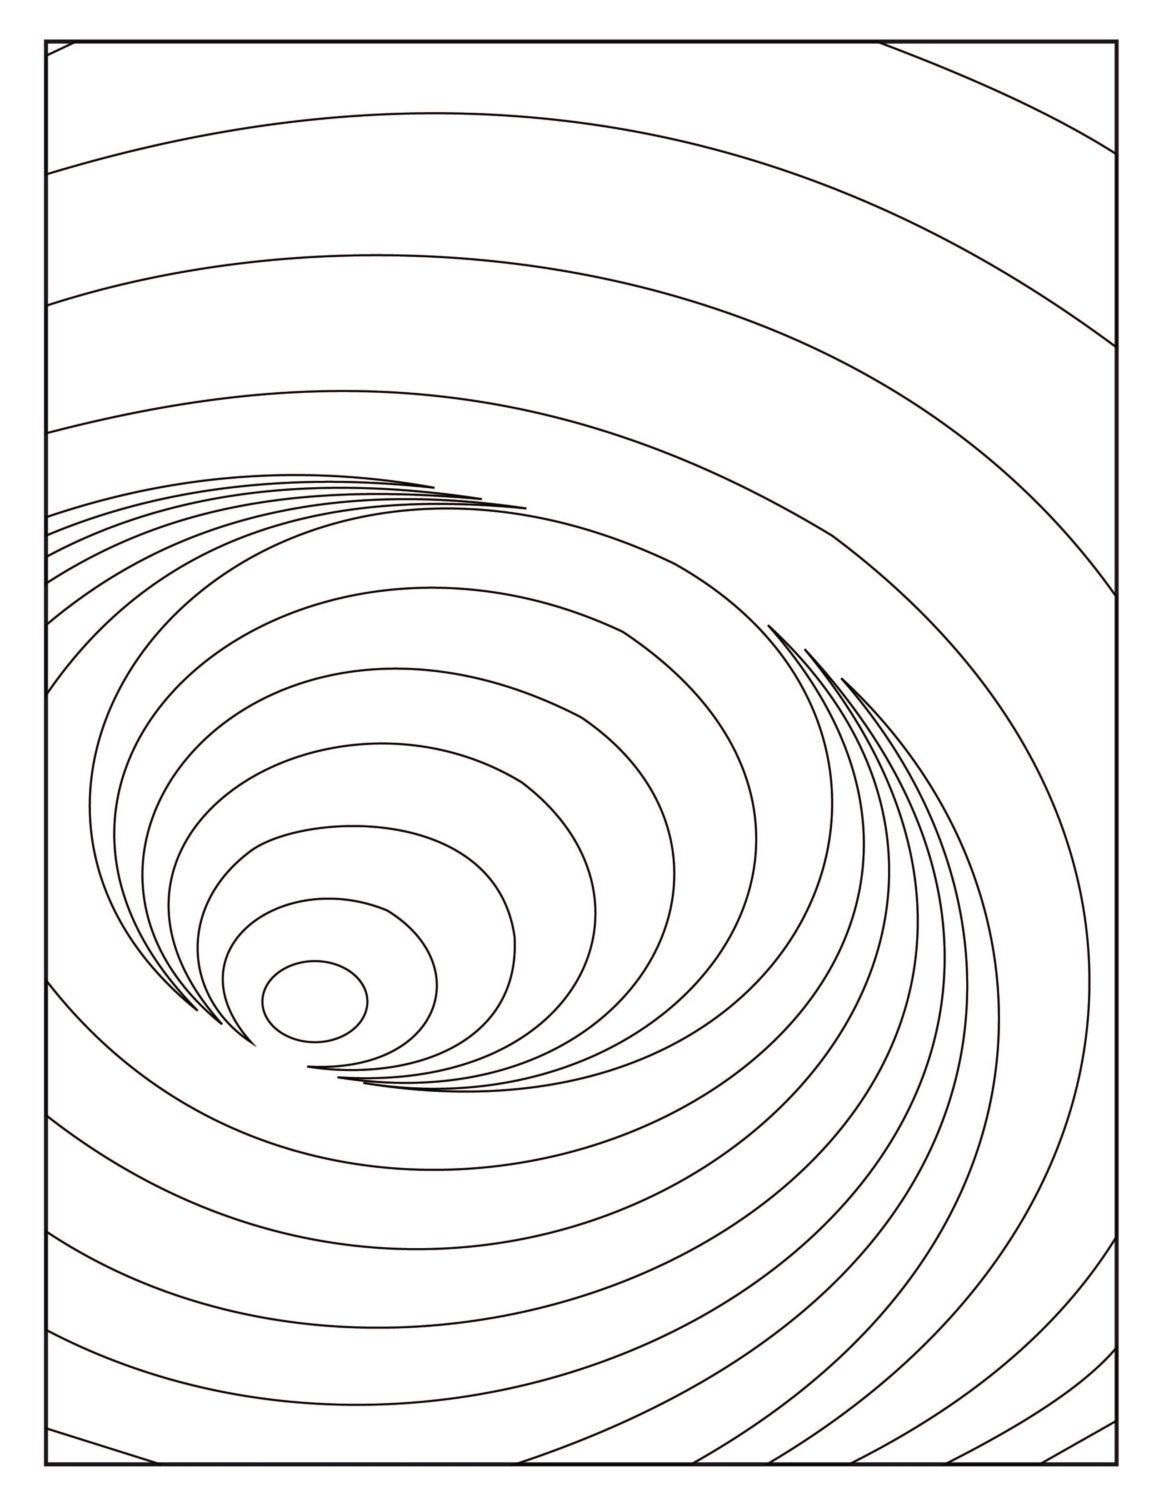 Digital Optical Illusion 4 Coloring Page By